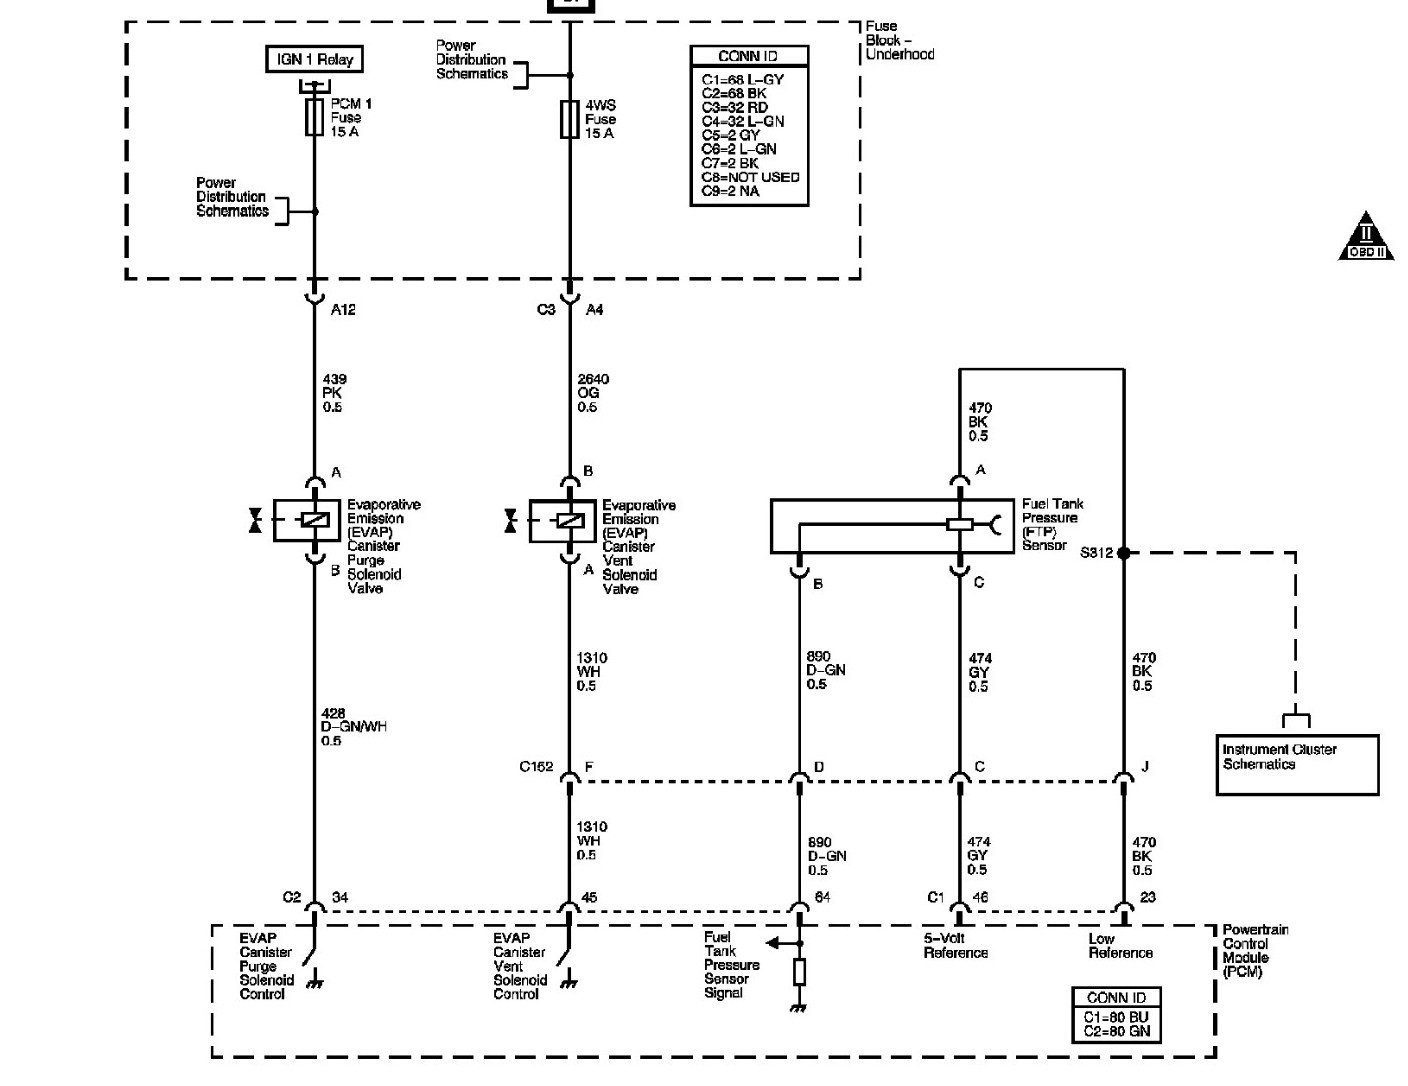 Wiring Diagram 2009 Gmc Sierra : I have a chek engine fault that will not clear in my